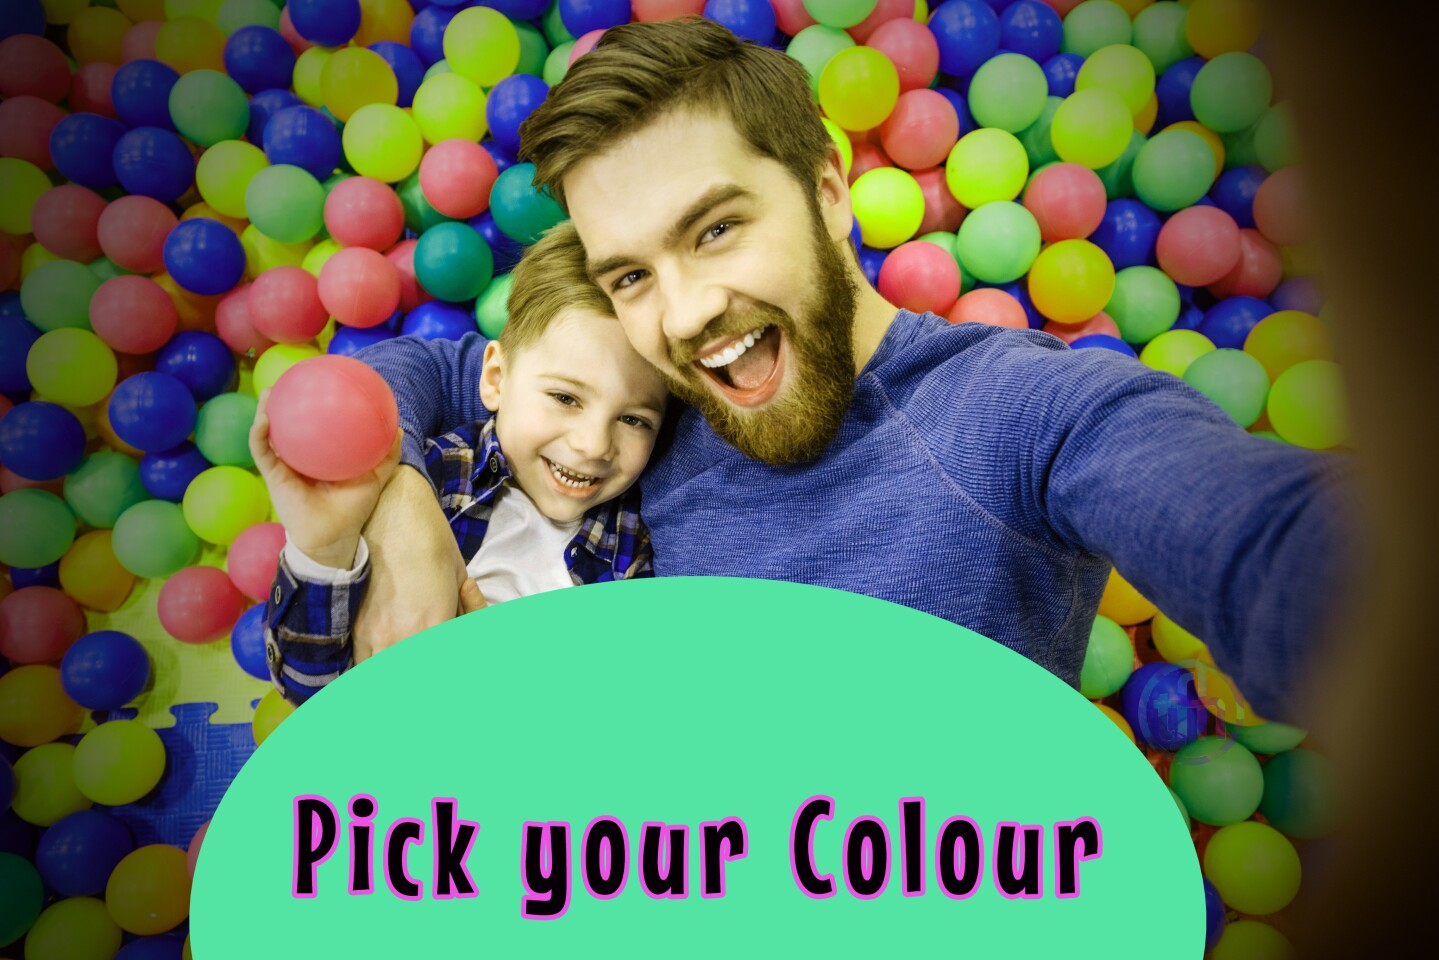 500 Sensory Ball Pool Balls (mixed colours)